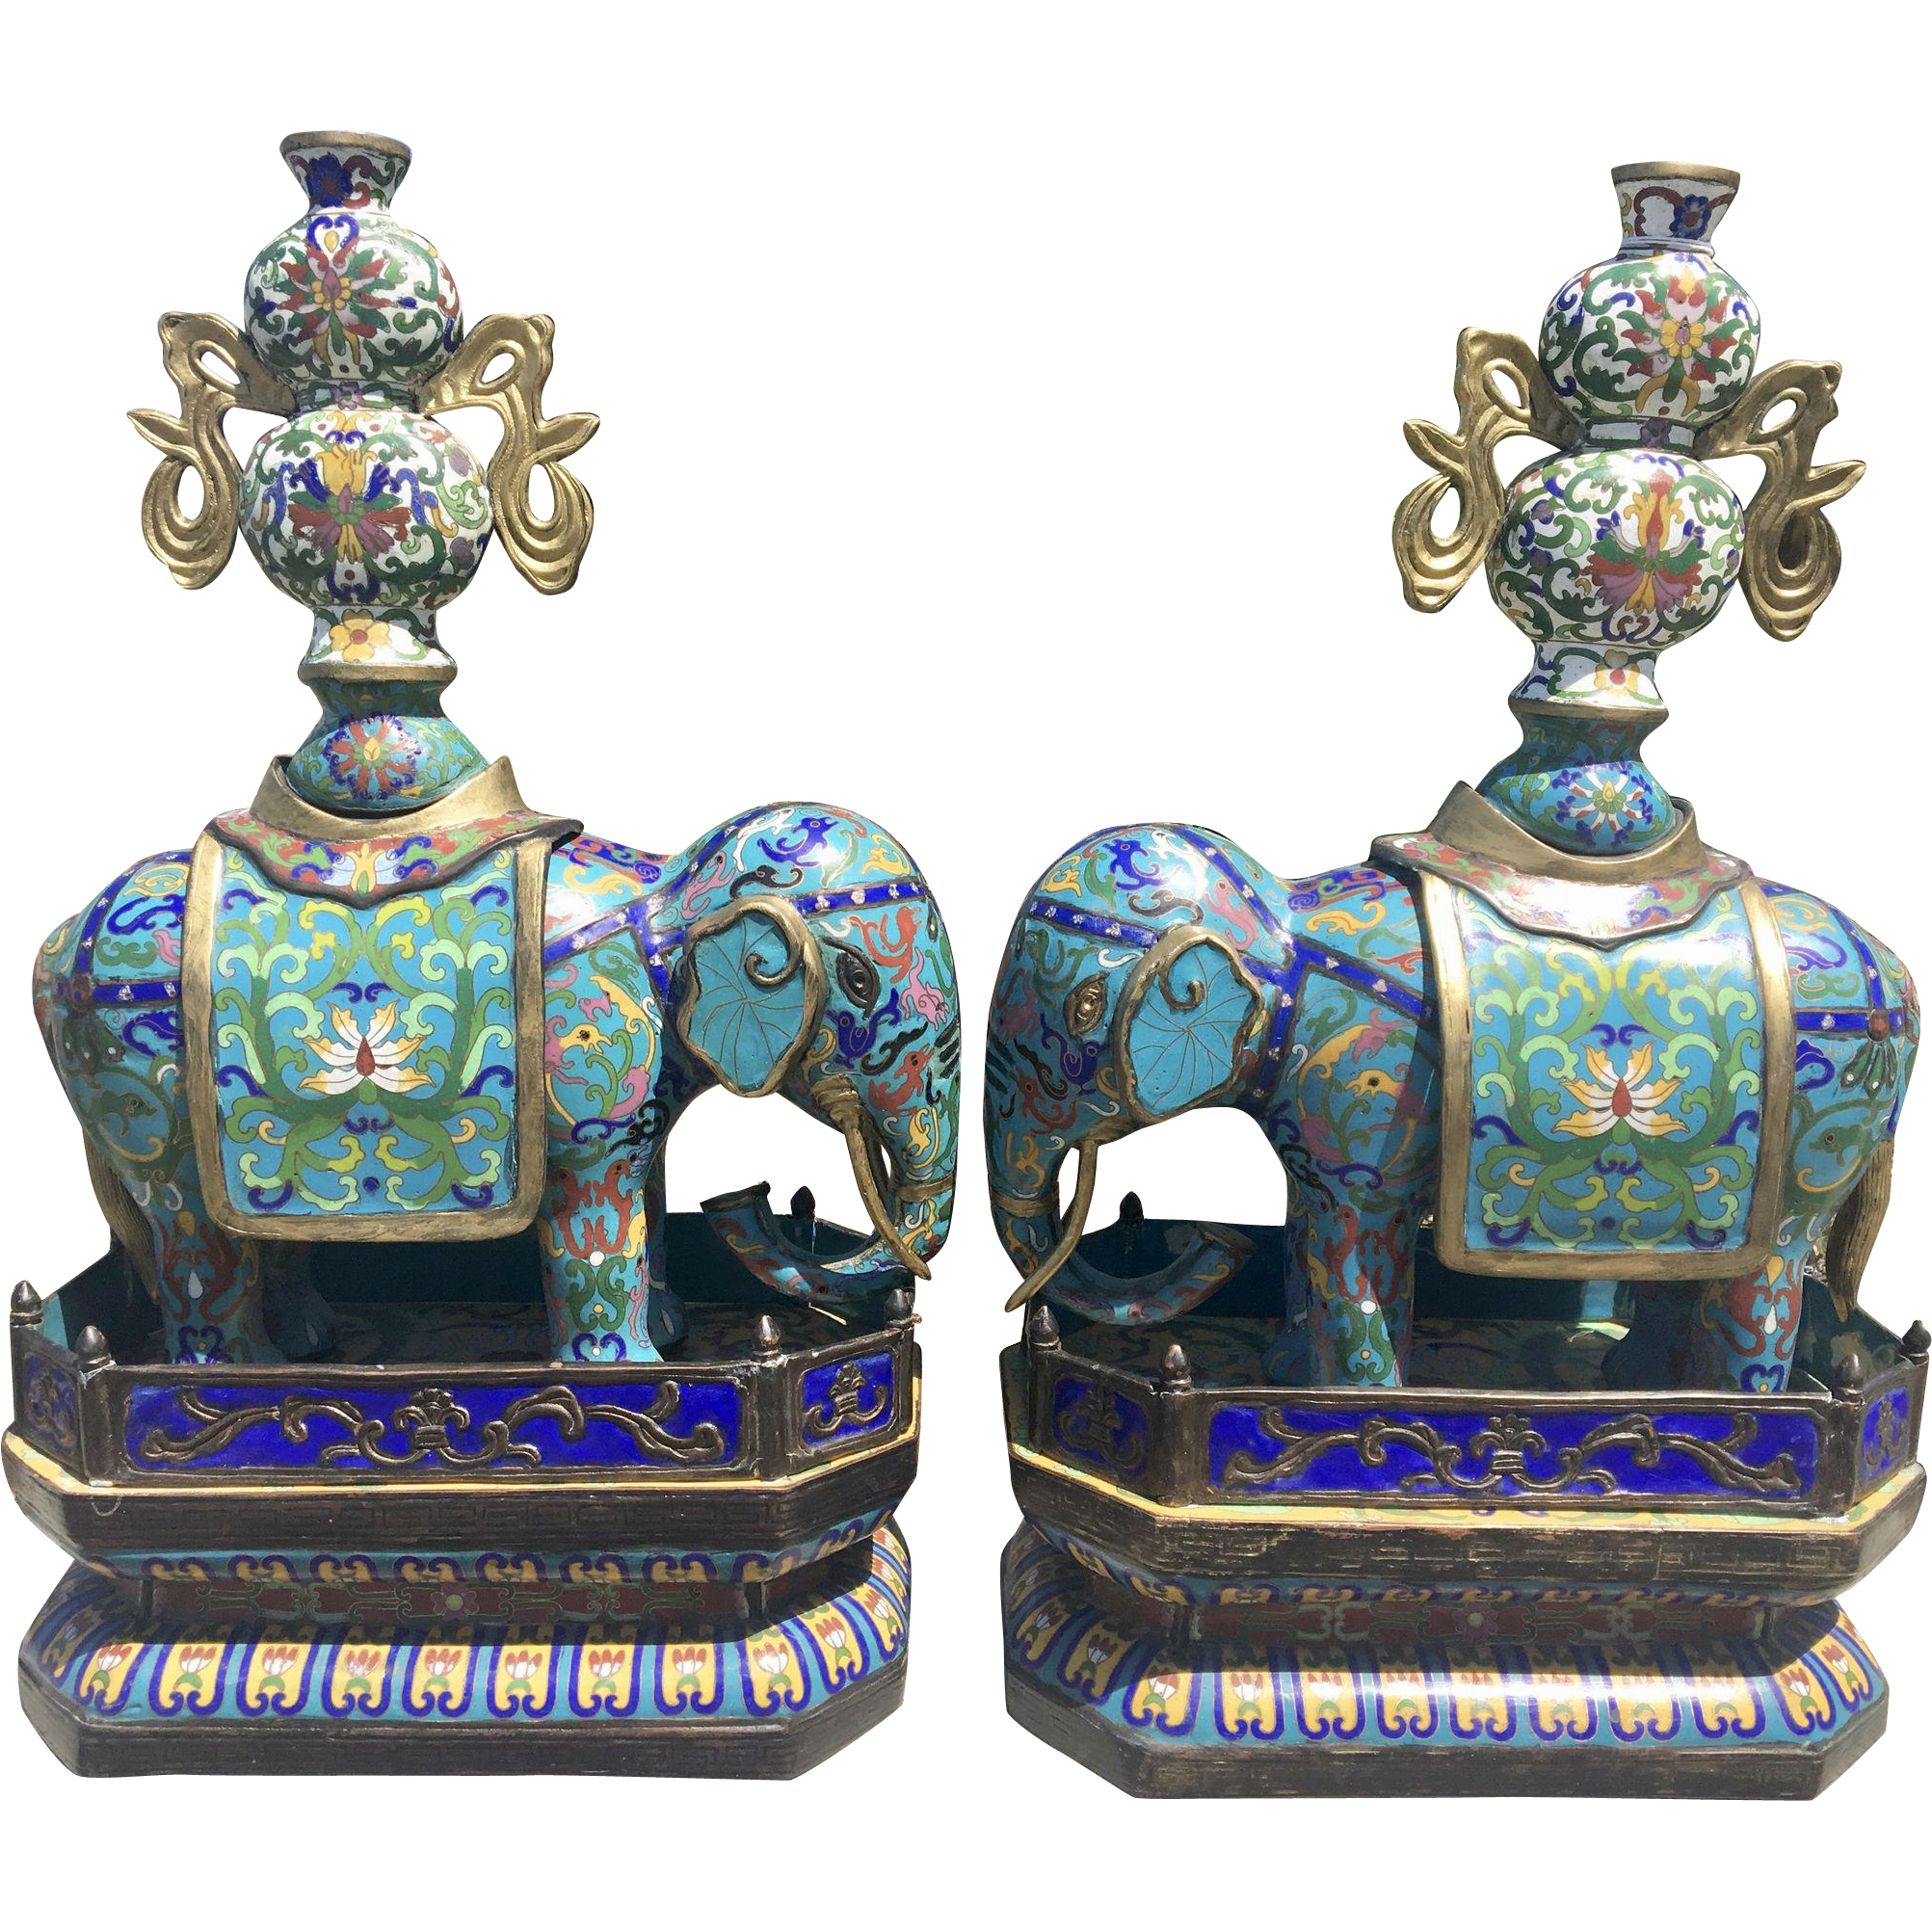 Pair Old Chinese Cloisonné Enamel Elephants Candelabra Censers On Plinths Stands